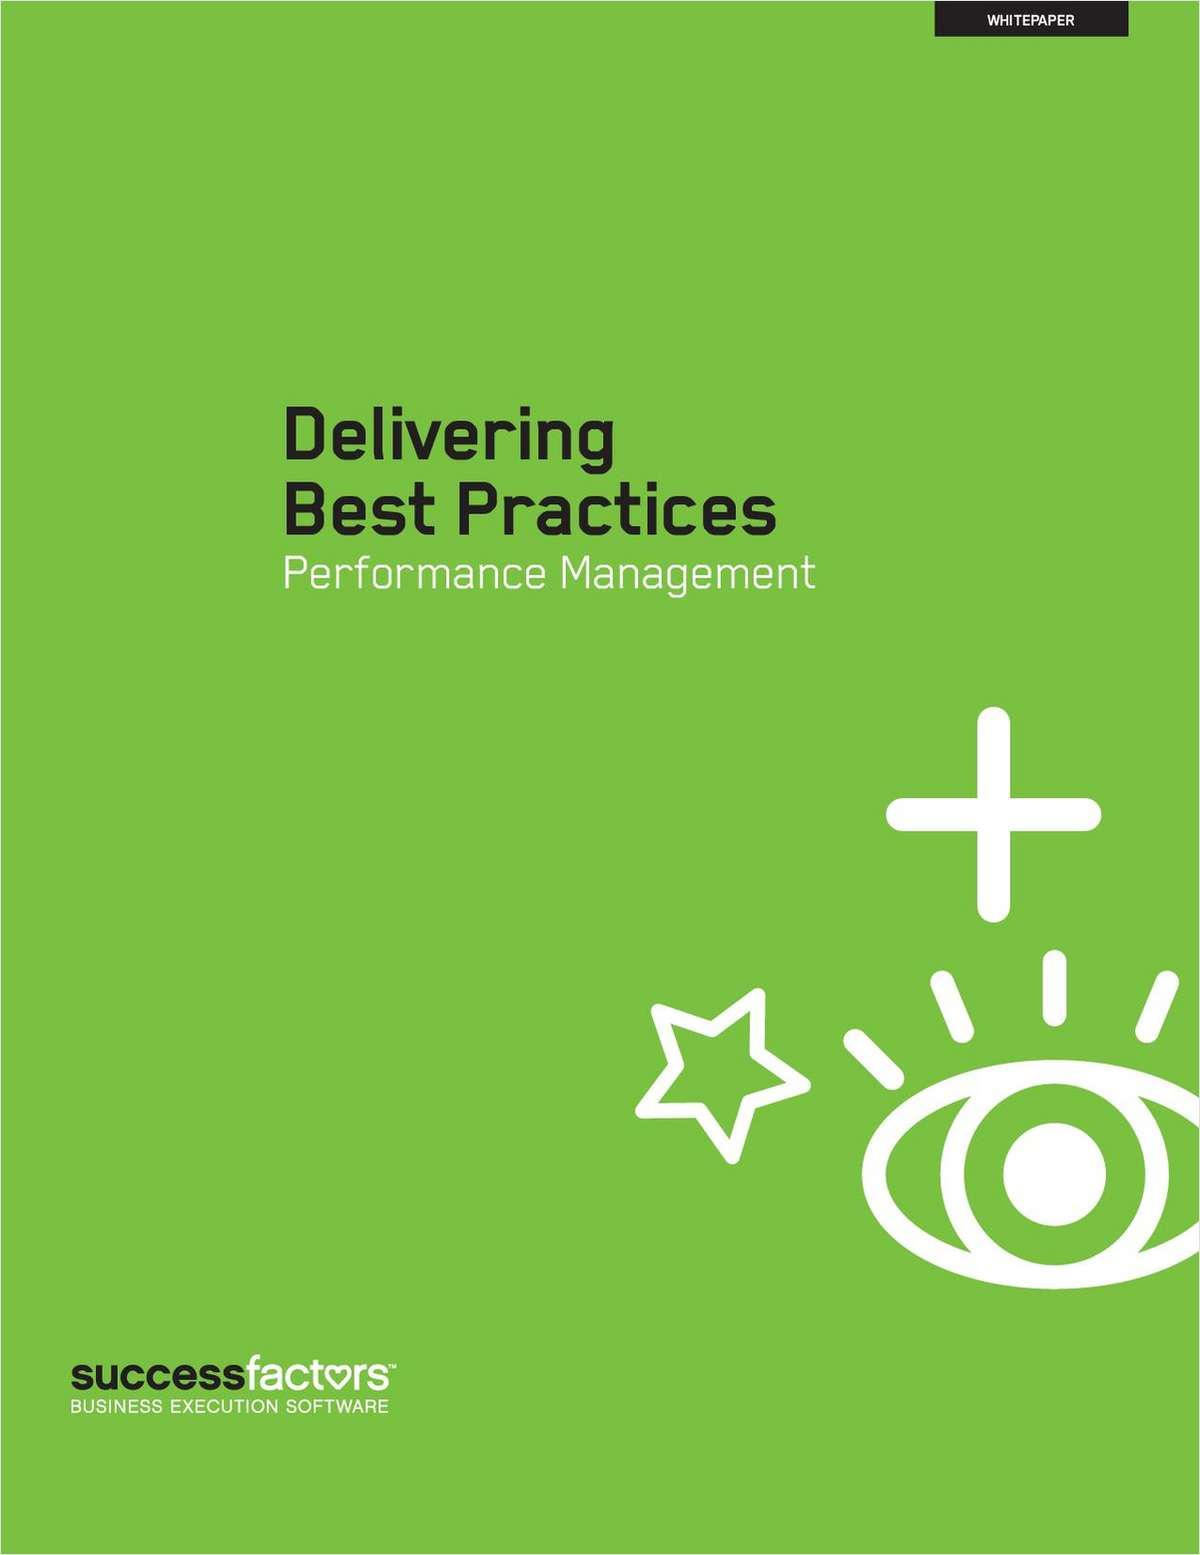 Performance Management Best Practices: The Challenges of Deploying Performance Management